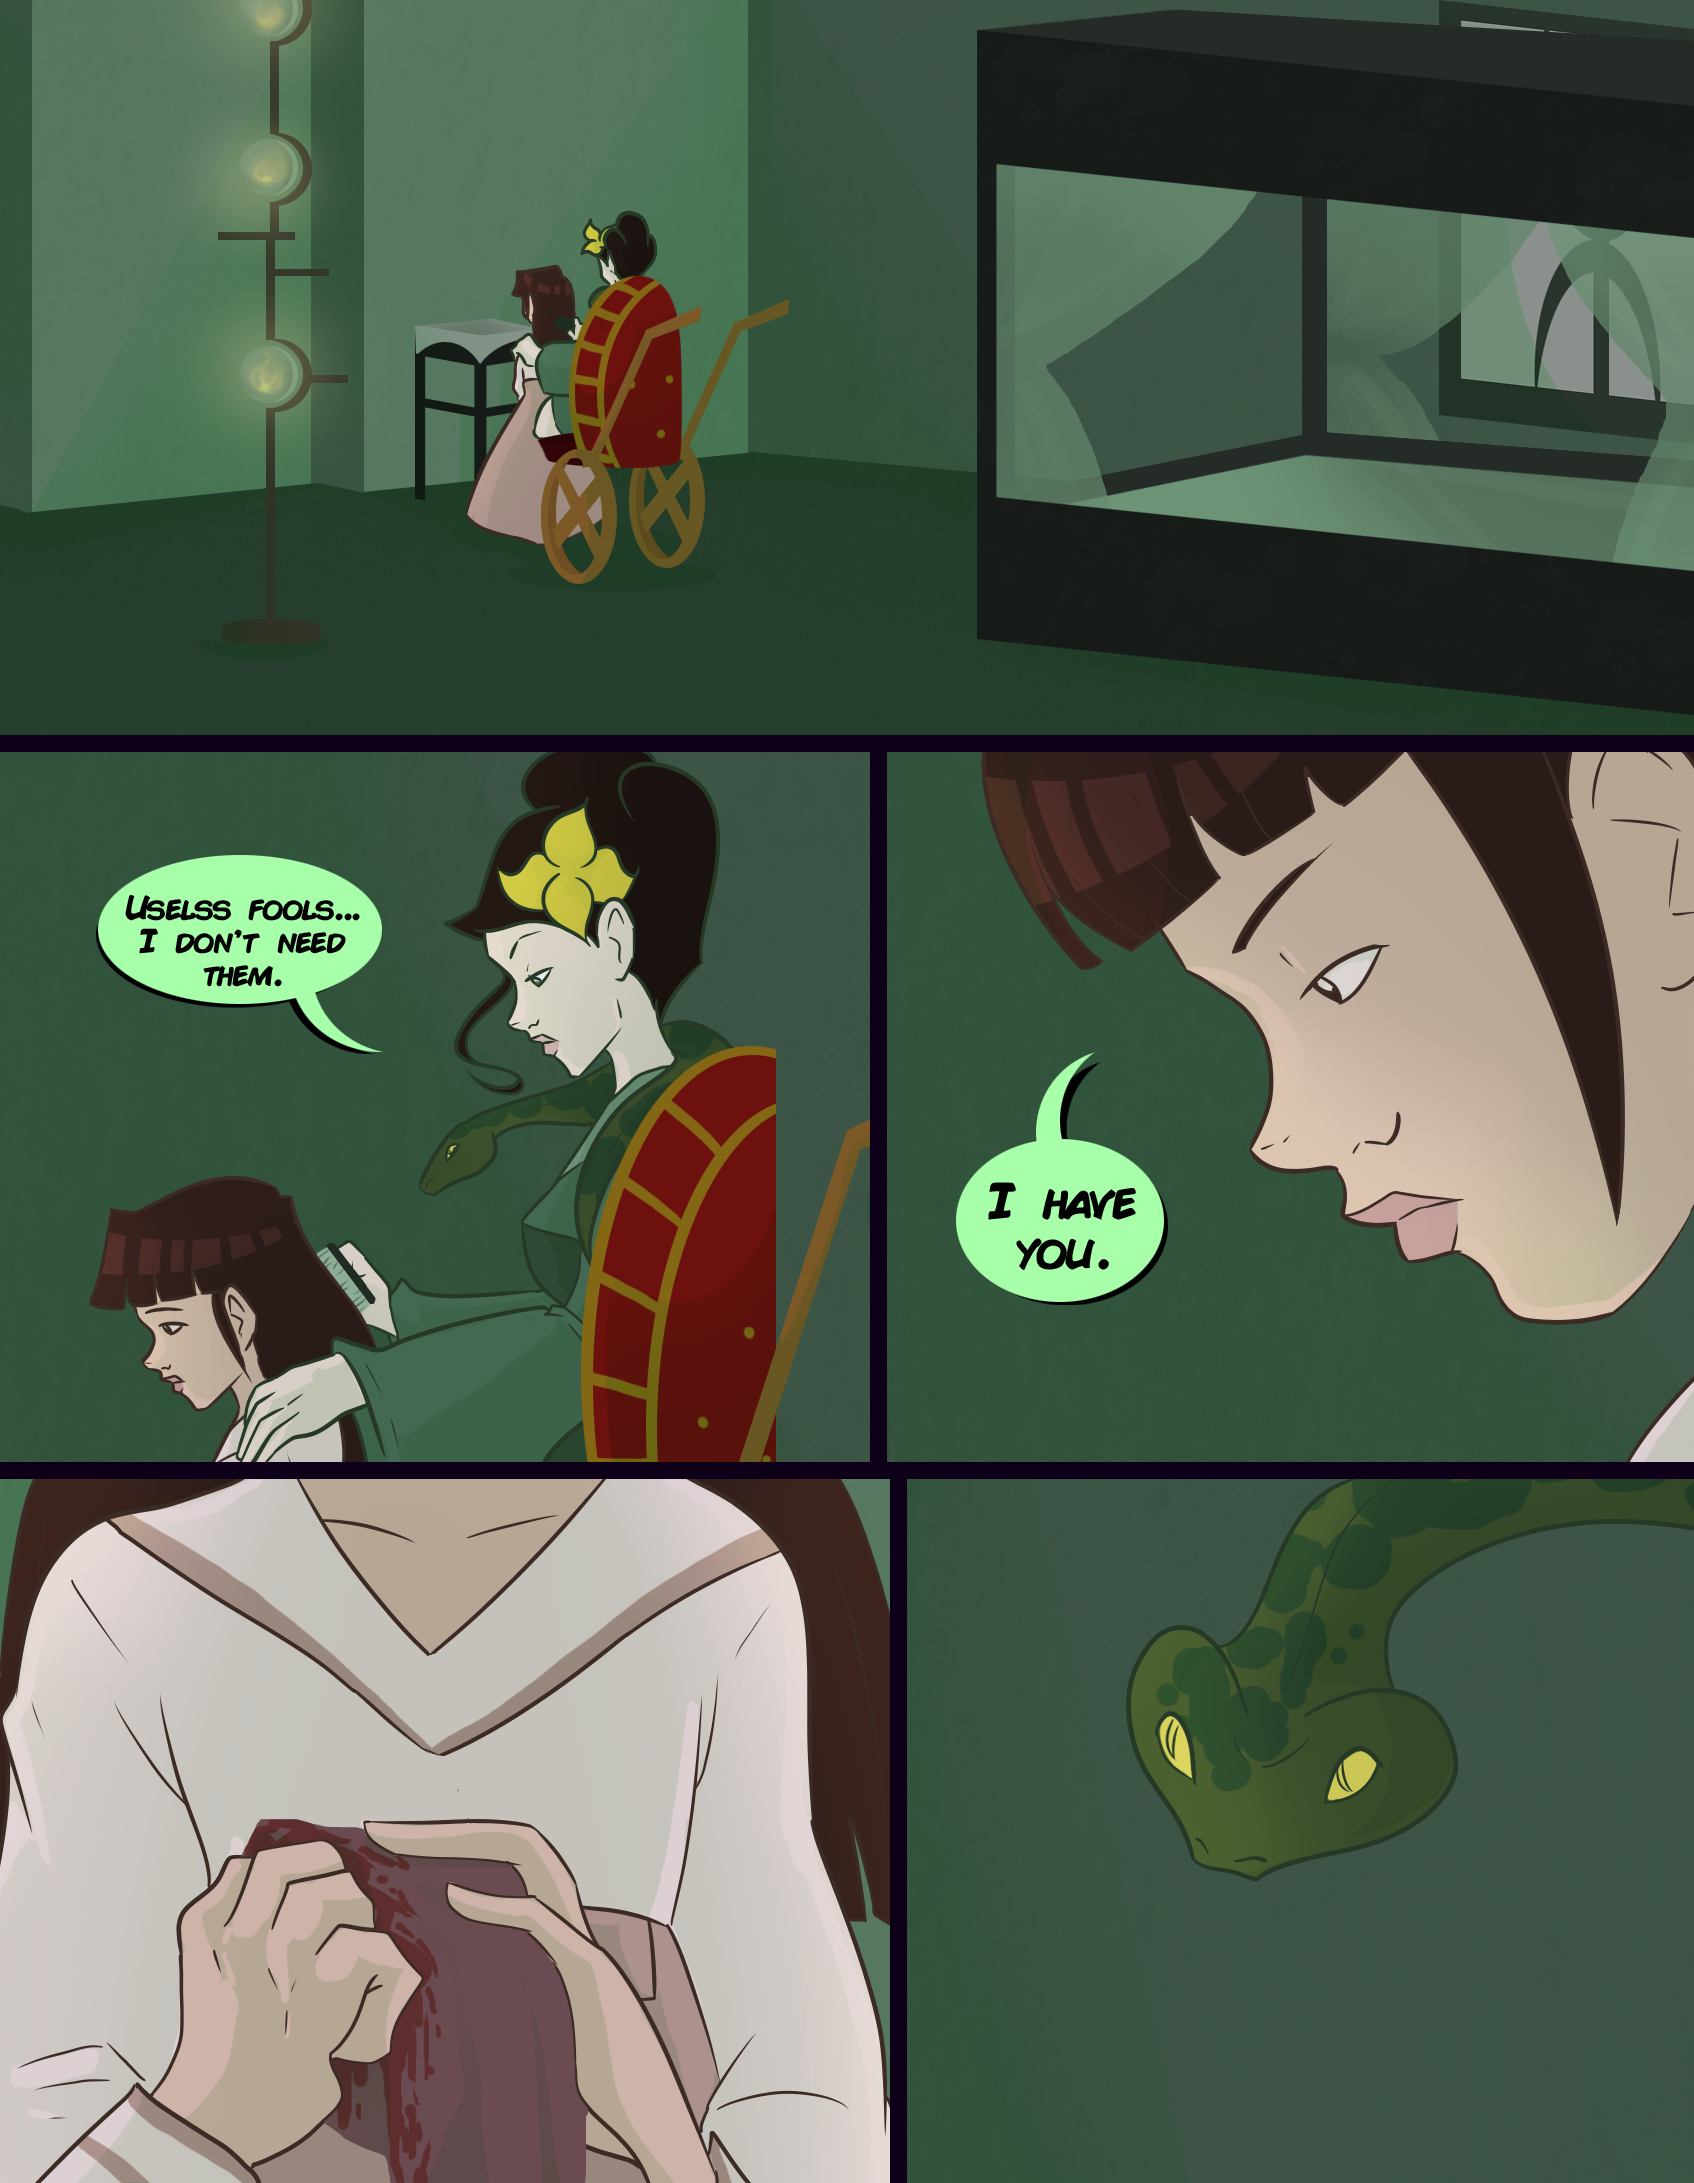 Patricia: Page 106